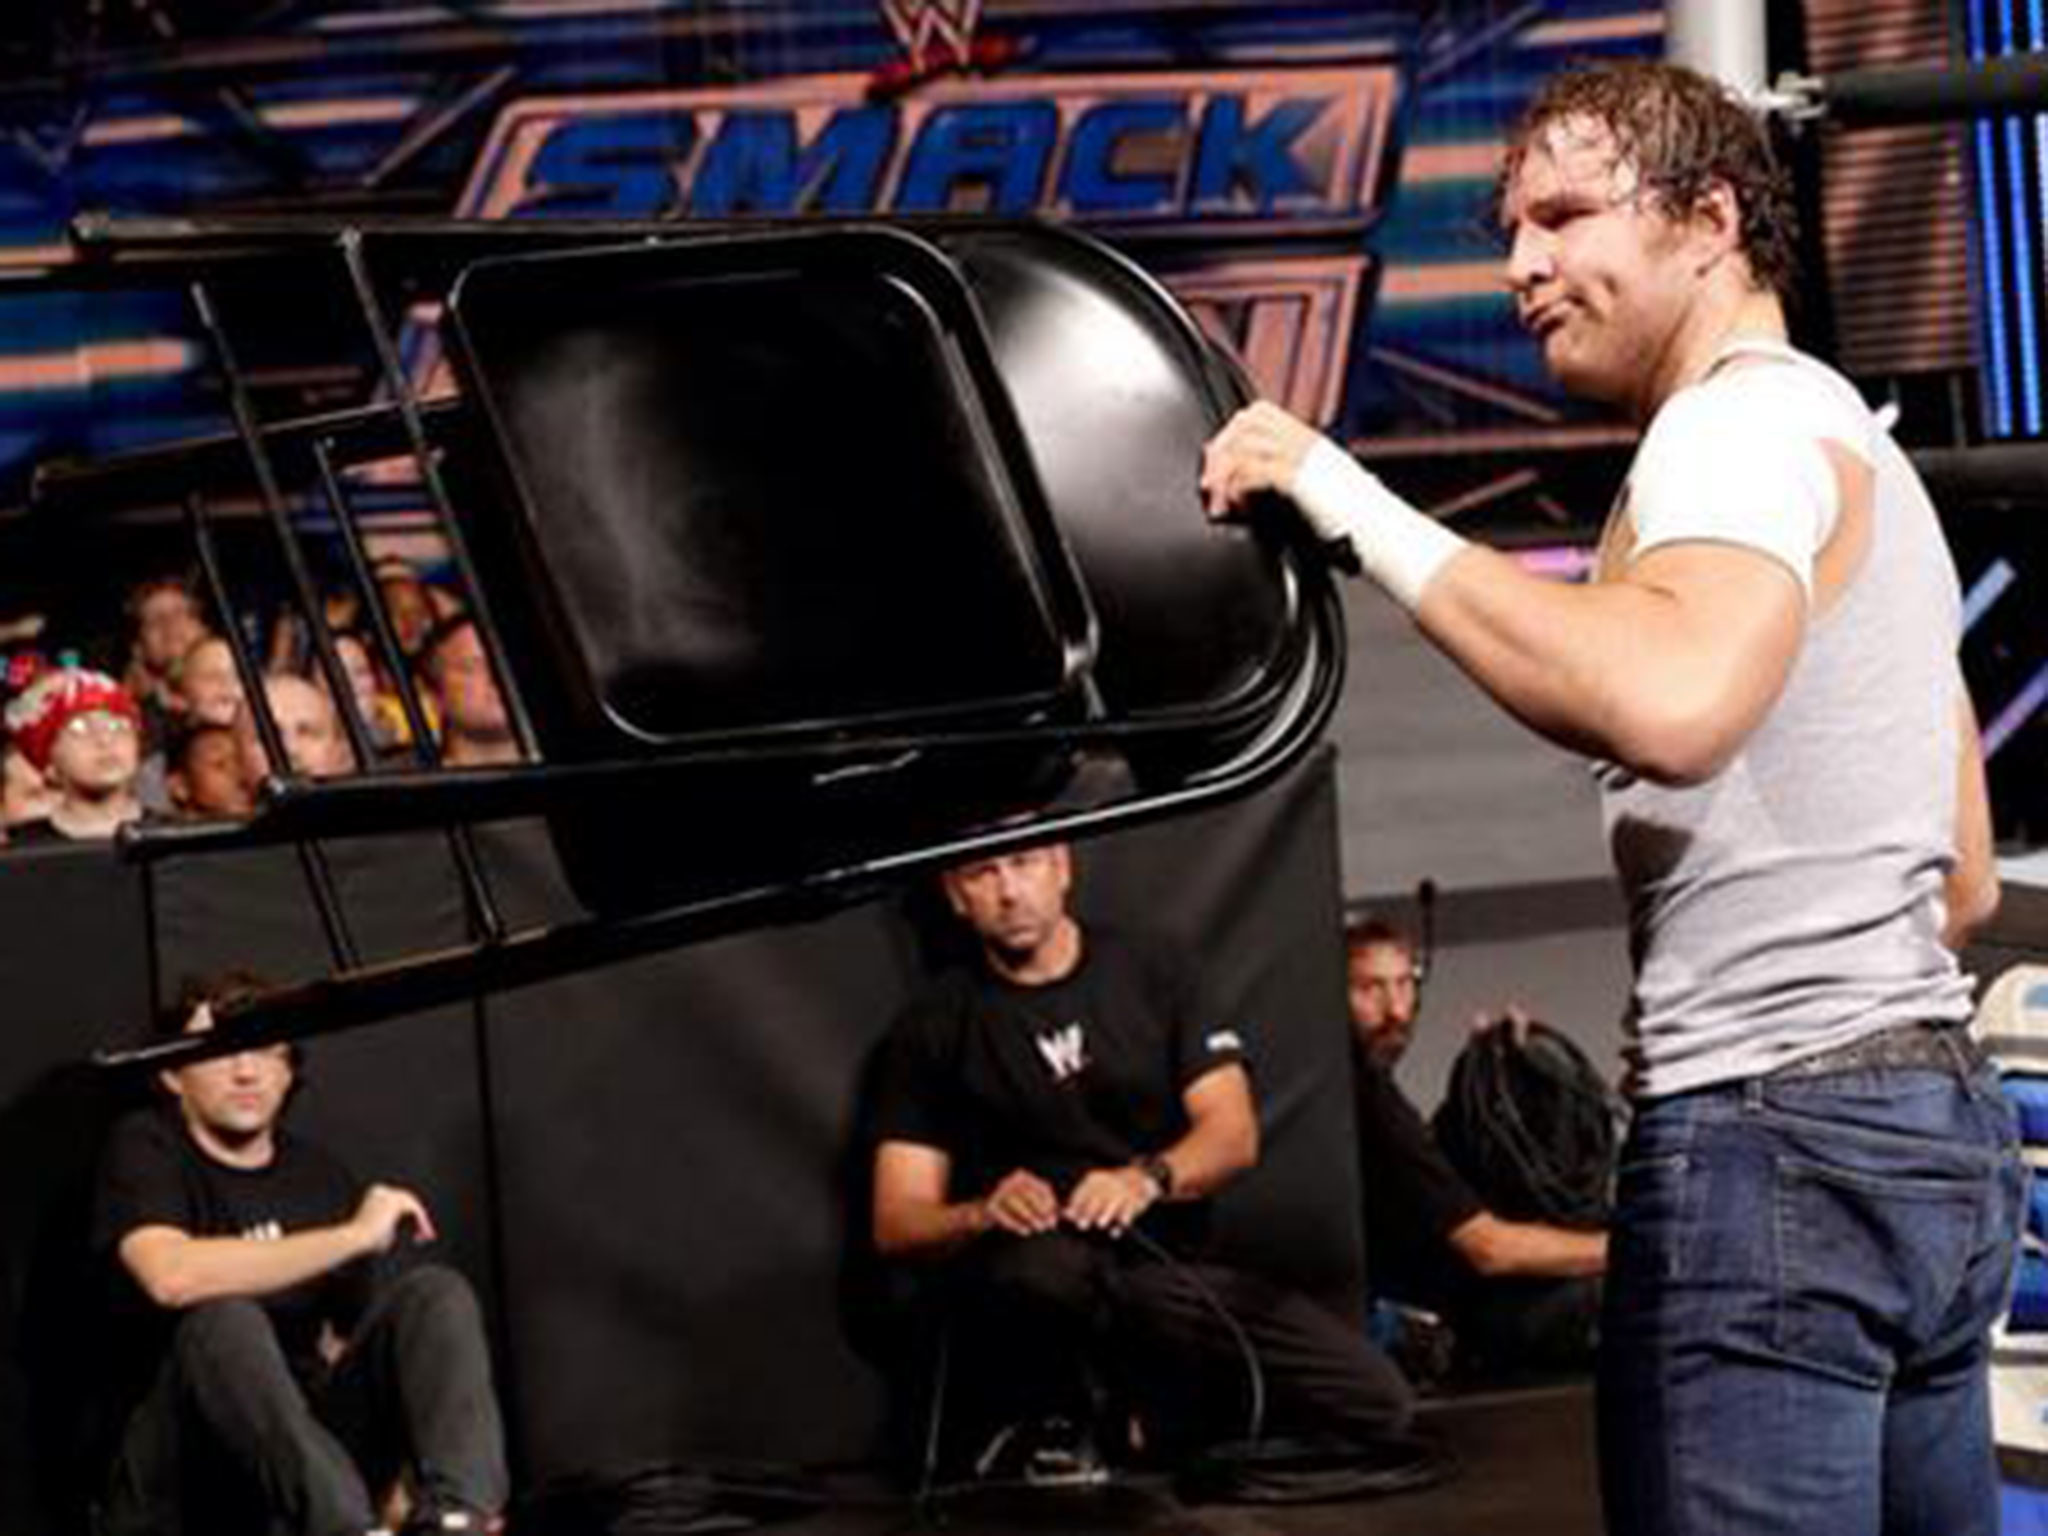 WWE Smackdown results: Dean Ambrose and Cesaro steal the show in a no  disqualification match while Roman Reigns continues his relentless rise    The …